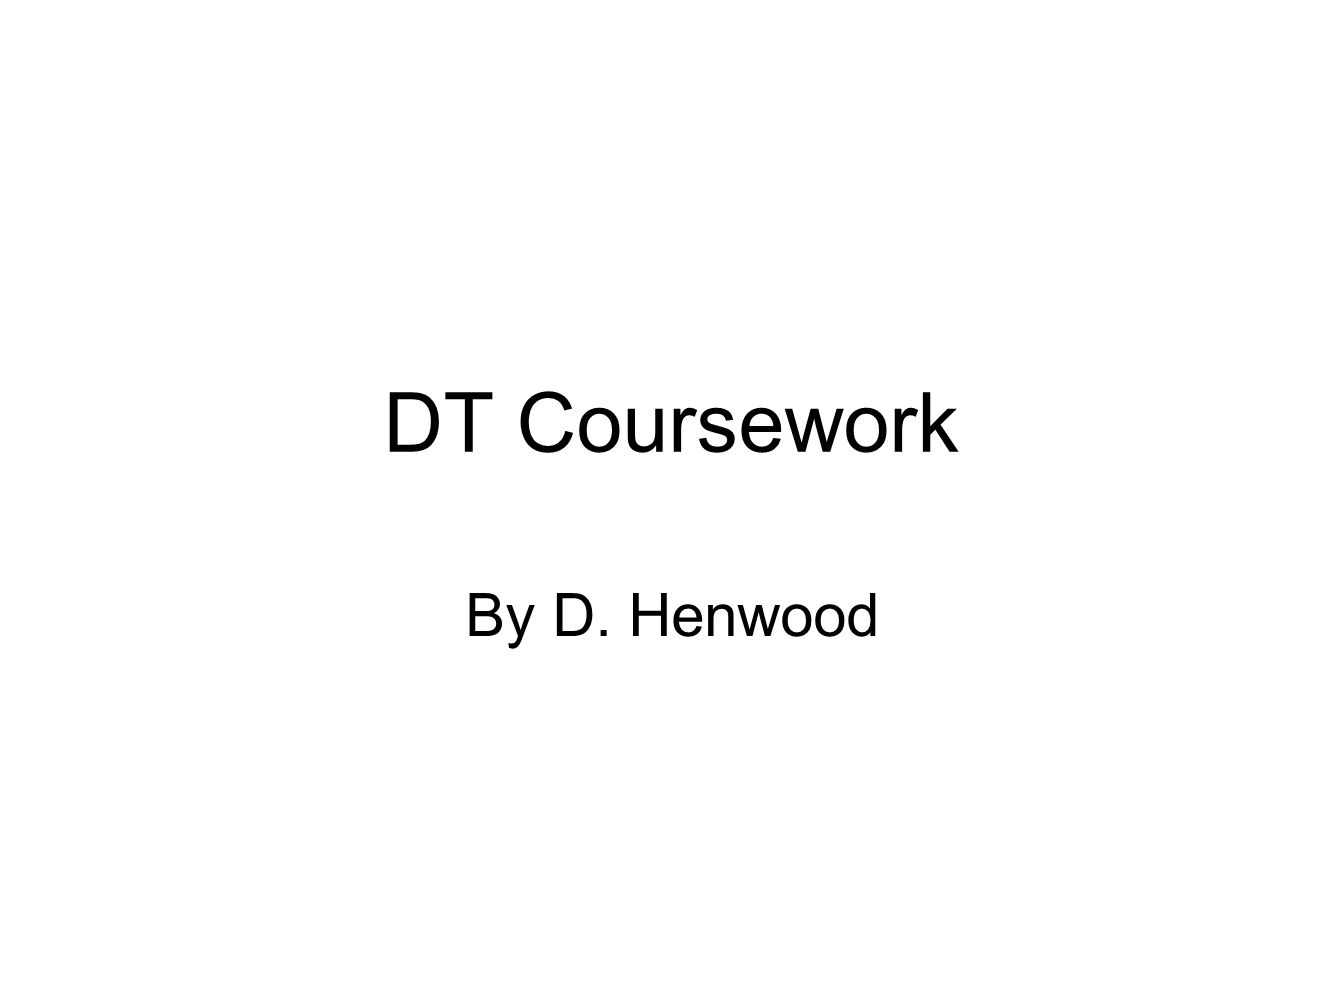 DT Coursework By D. Henwood